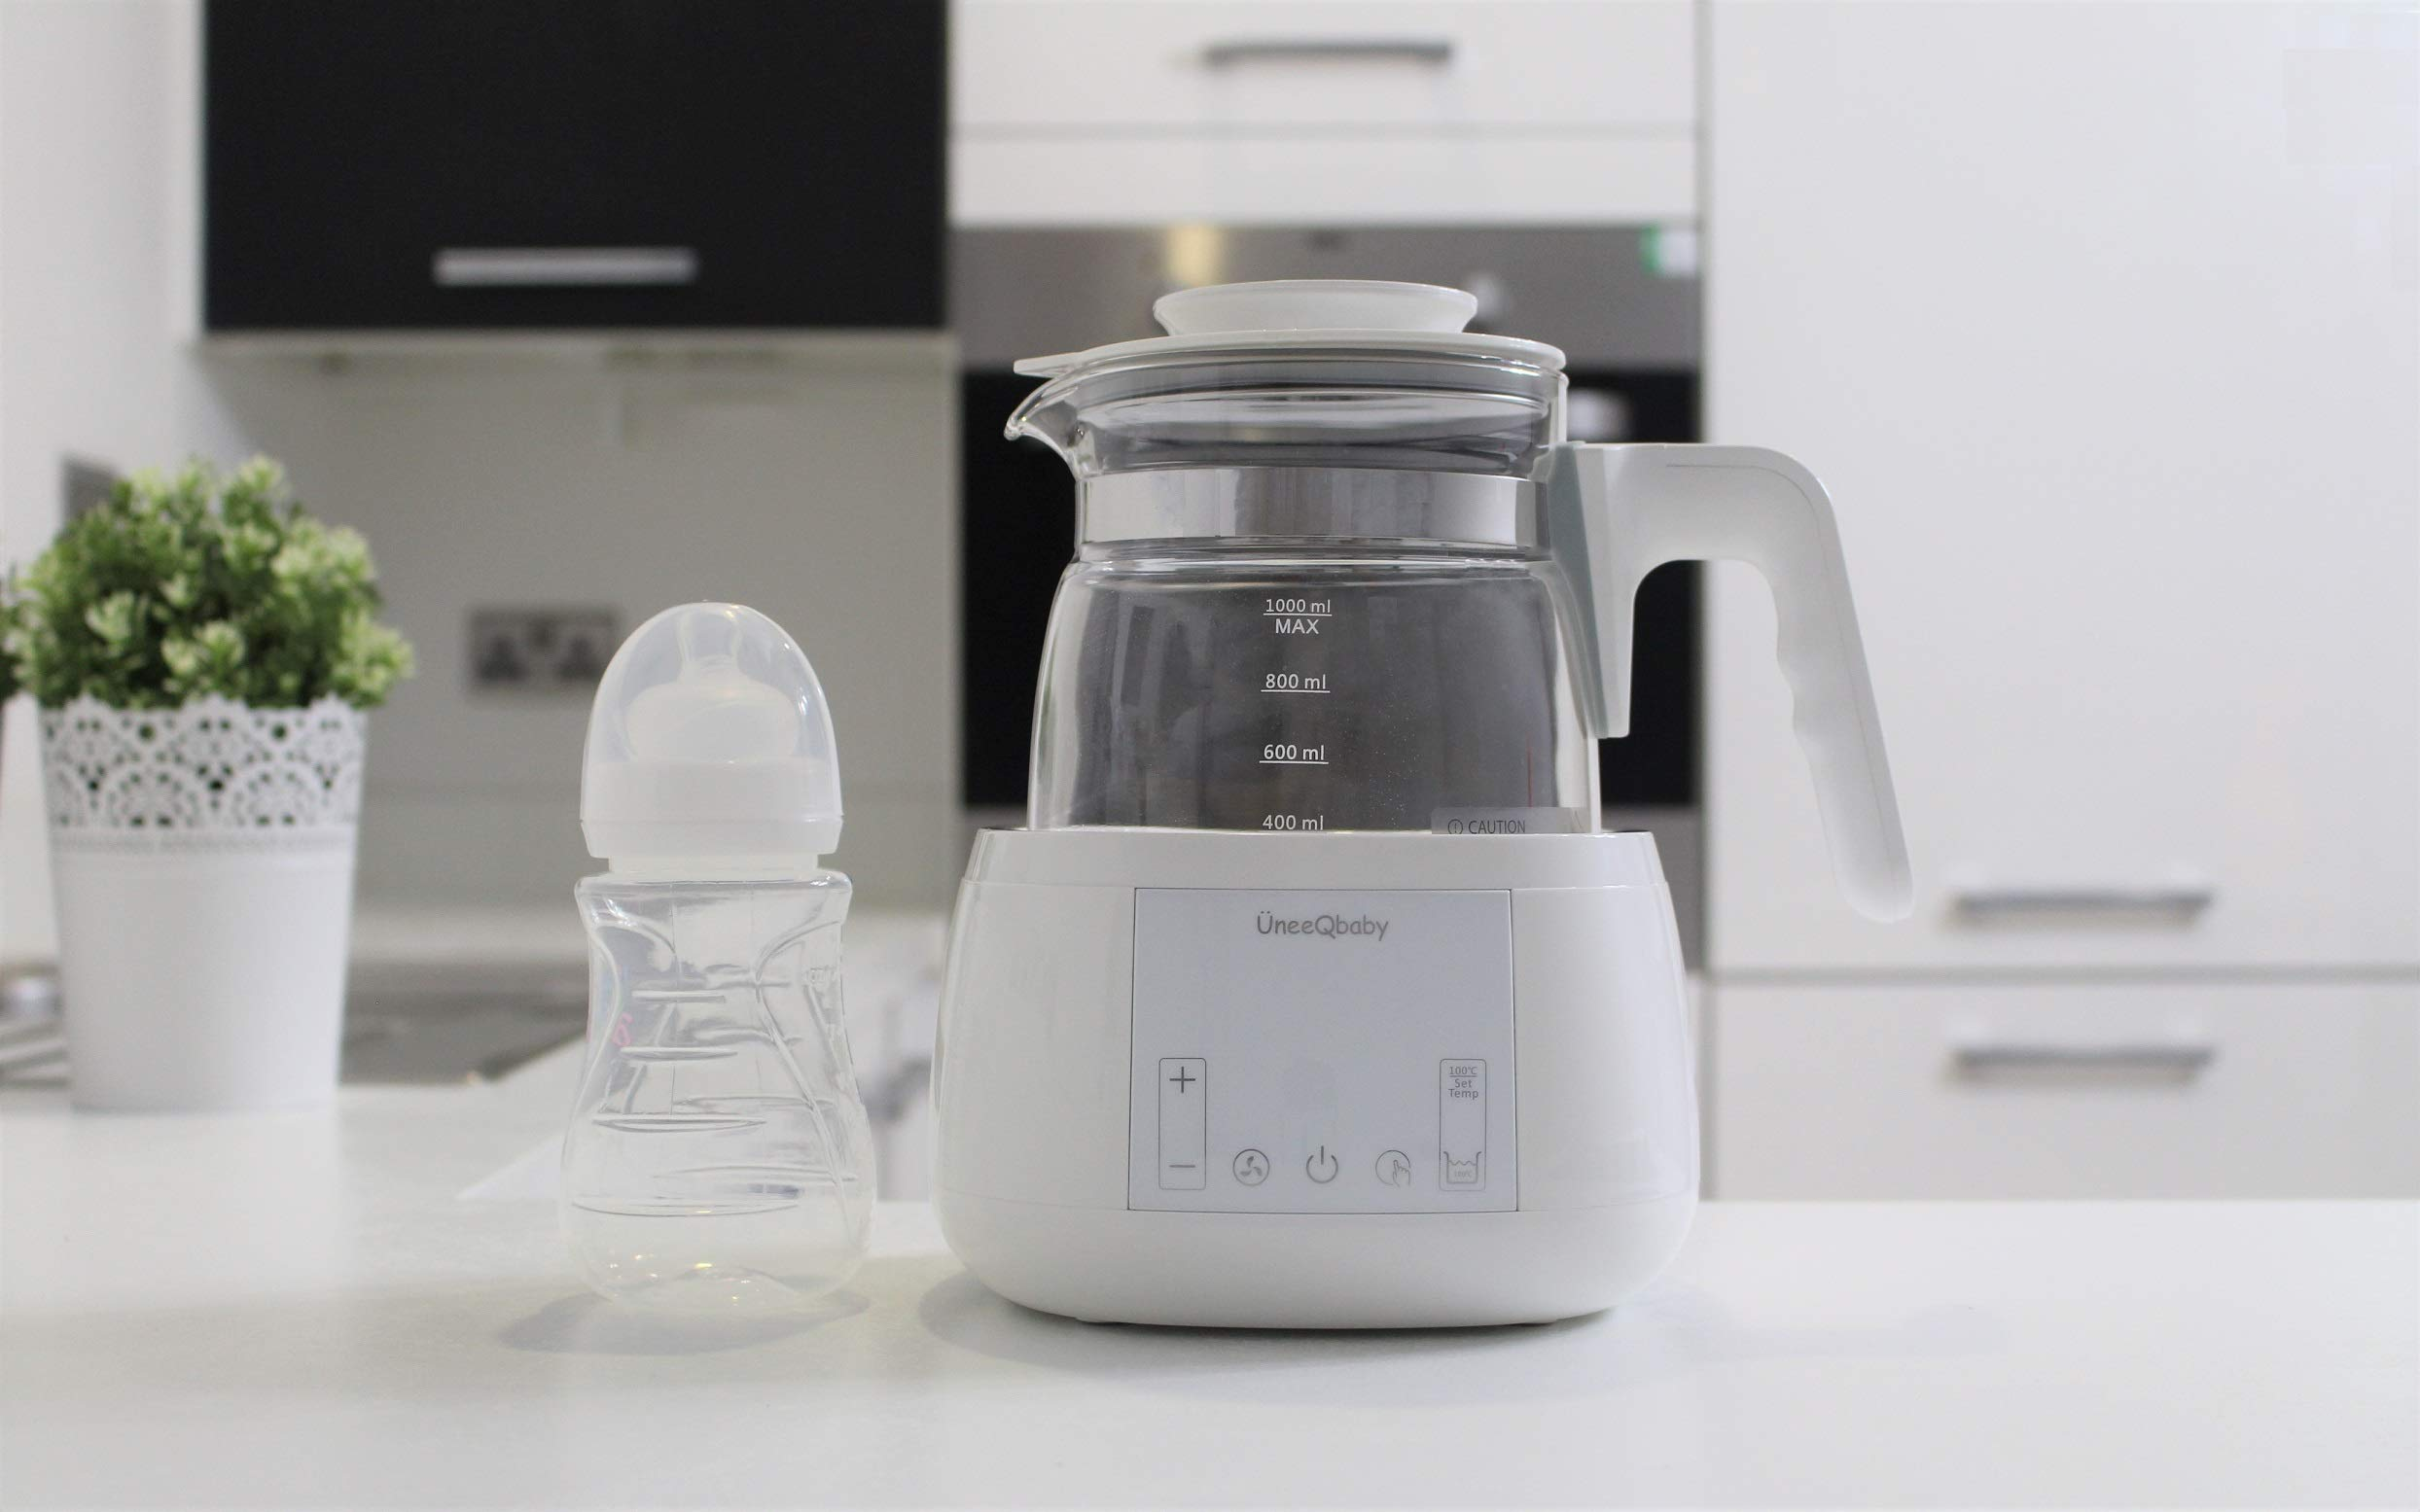 for Bottle Feeding ÜneeQbaby Baby Formula Kettle with Built in Thermostat